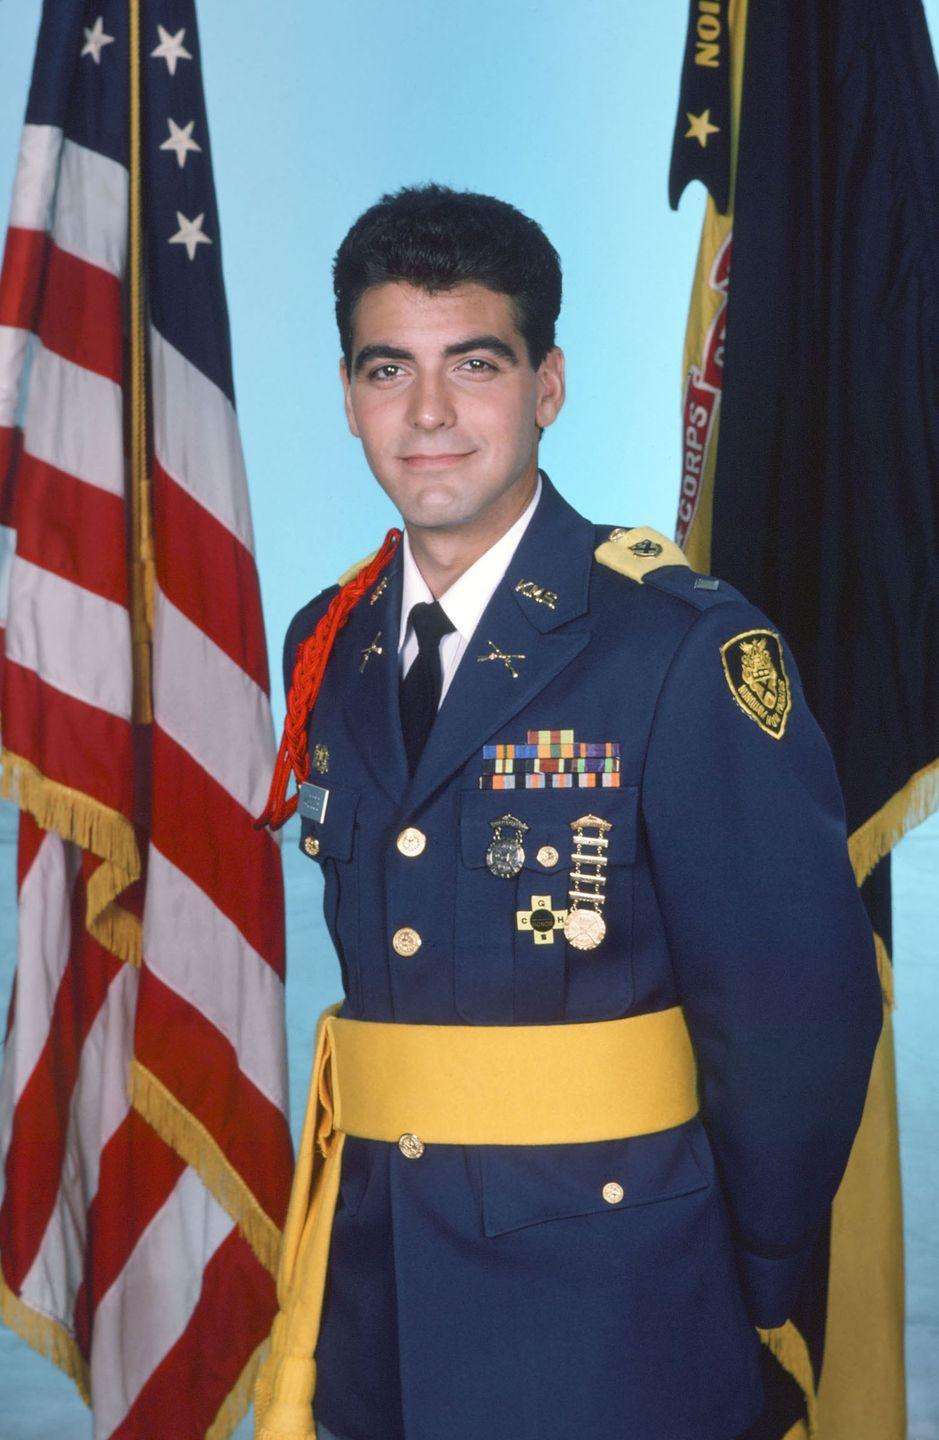 <p>Clooney as Major Biff Woods in NBC's Sunday Night At The Movies, <em>Combat High,</em> in 1986.</p>